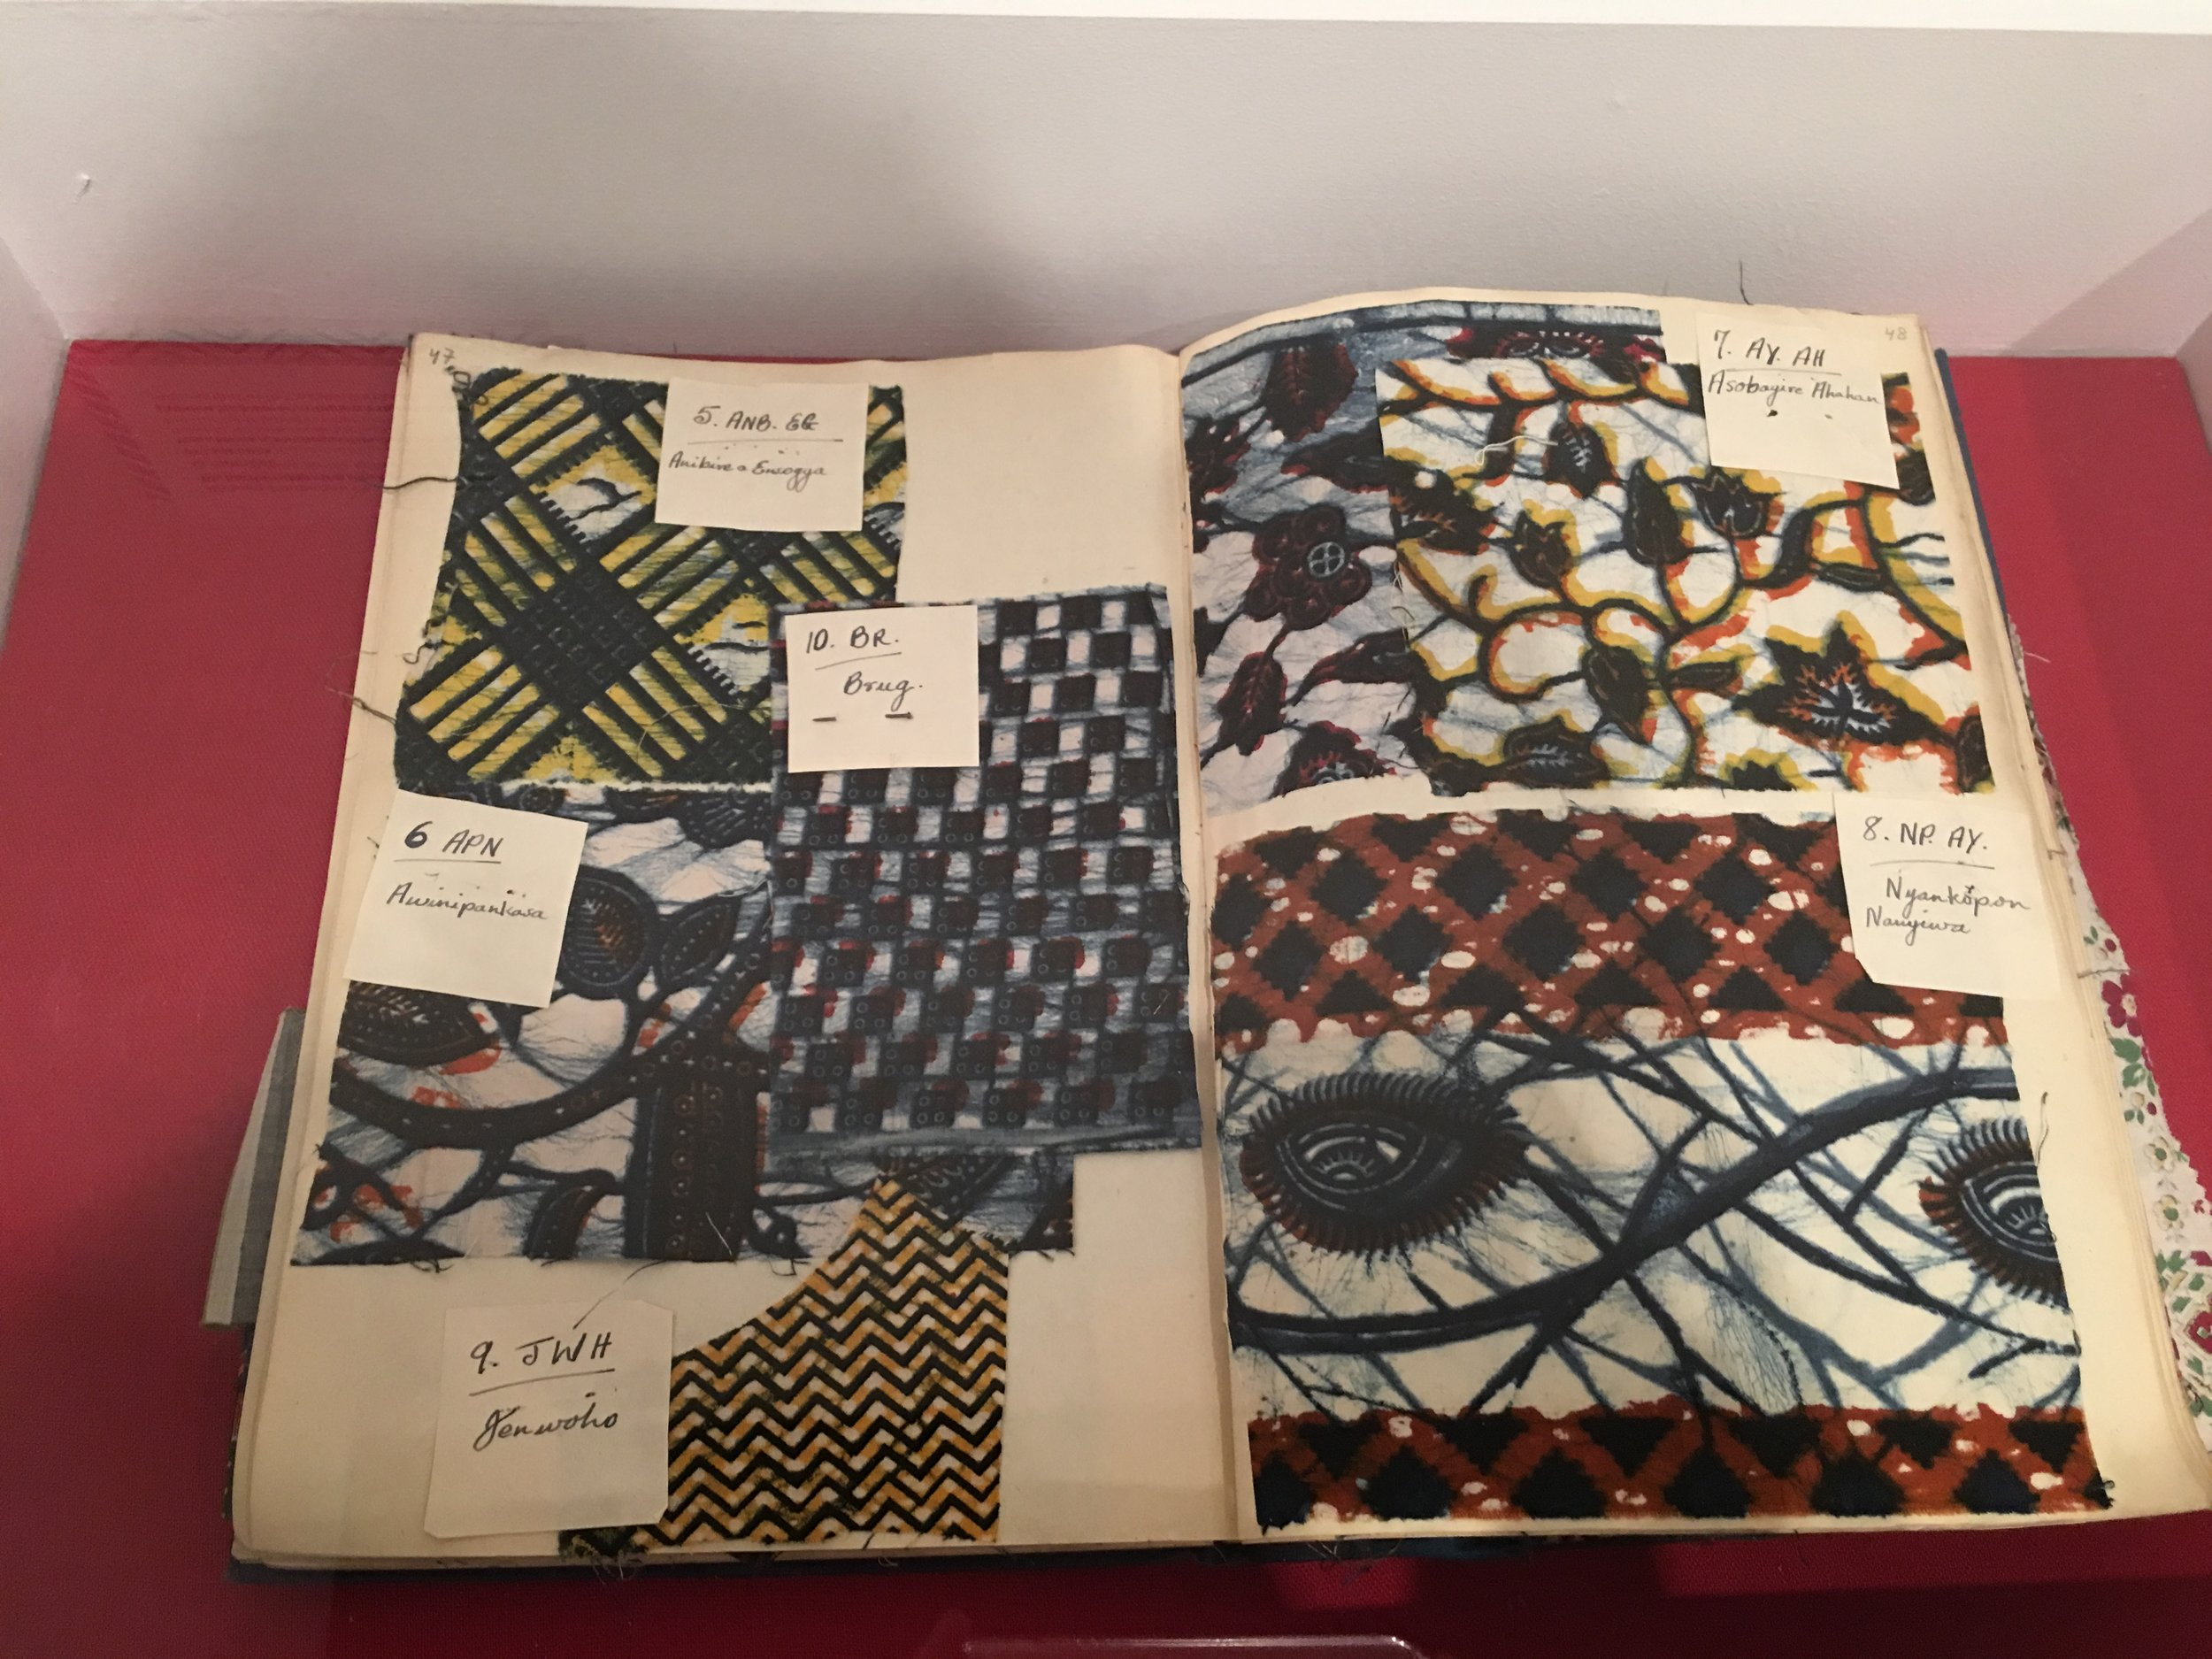 spring finn and co museum visits Richard Brotherton co sample book Designs Suitable for the African Market 1950S Vlisco Museum